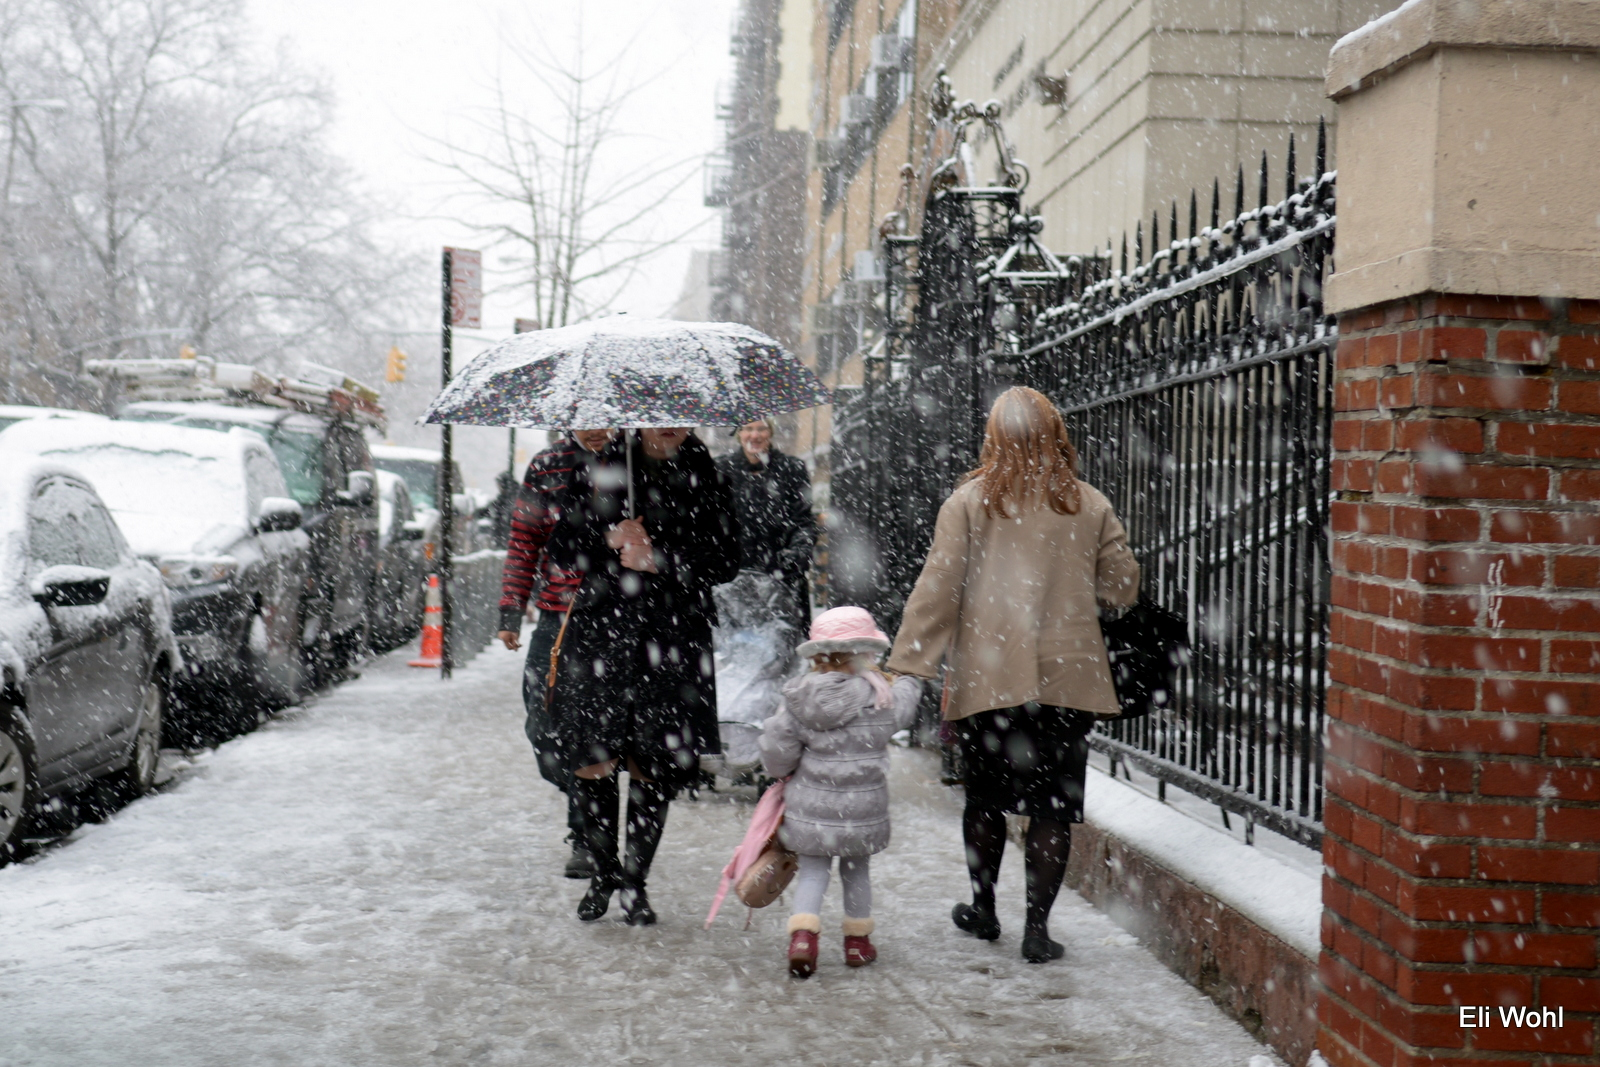 New+York+Weather New York, NY - Winter Weather To Hit City Saturday